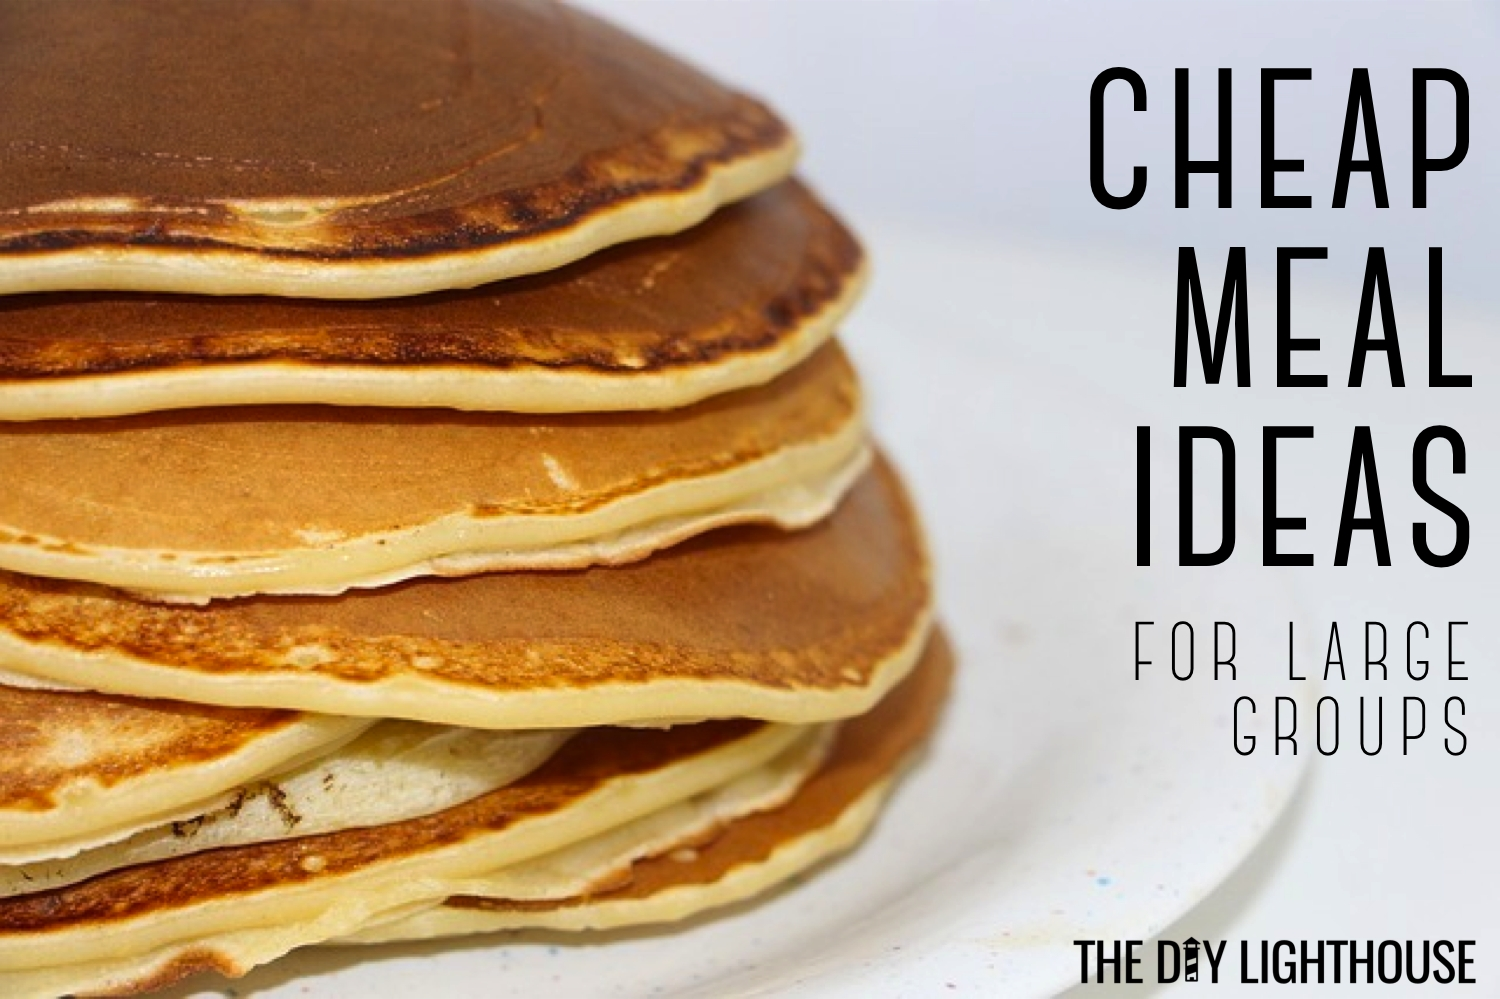 10 Ideal Breakfast Ideas For Large Groups cheap meals for feeding large groups 3 2020